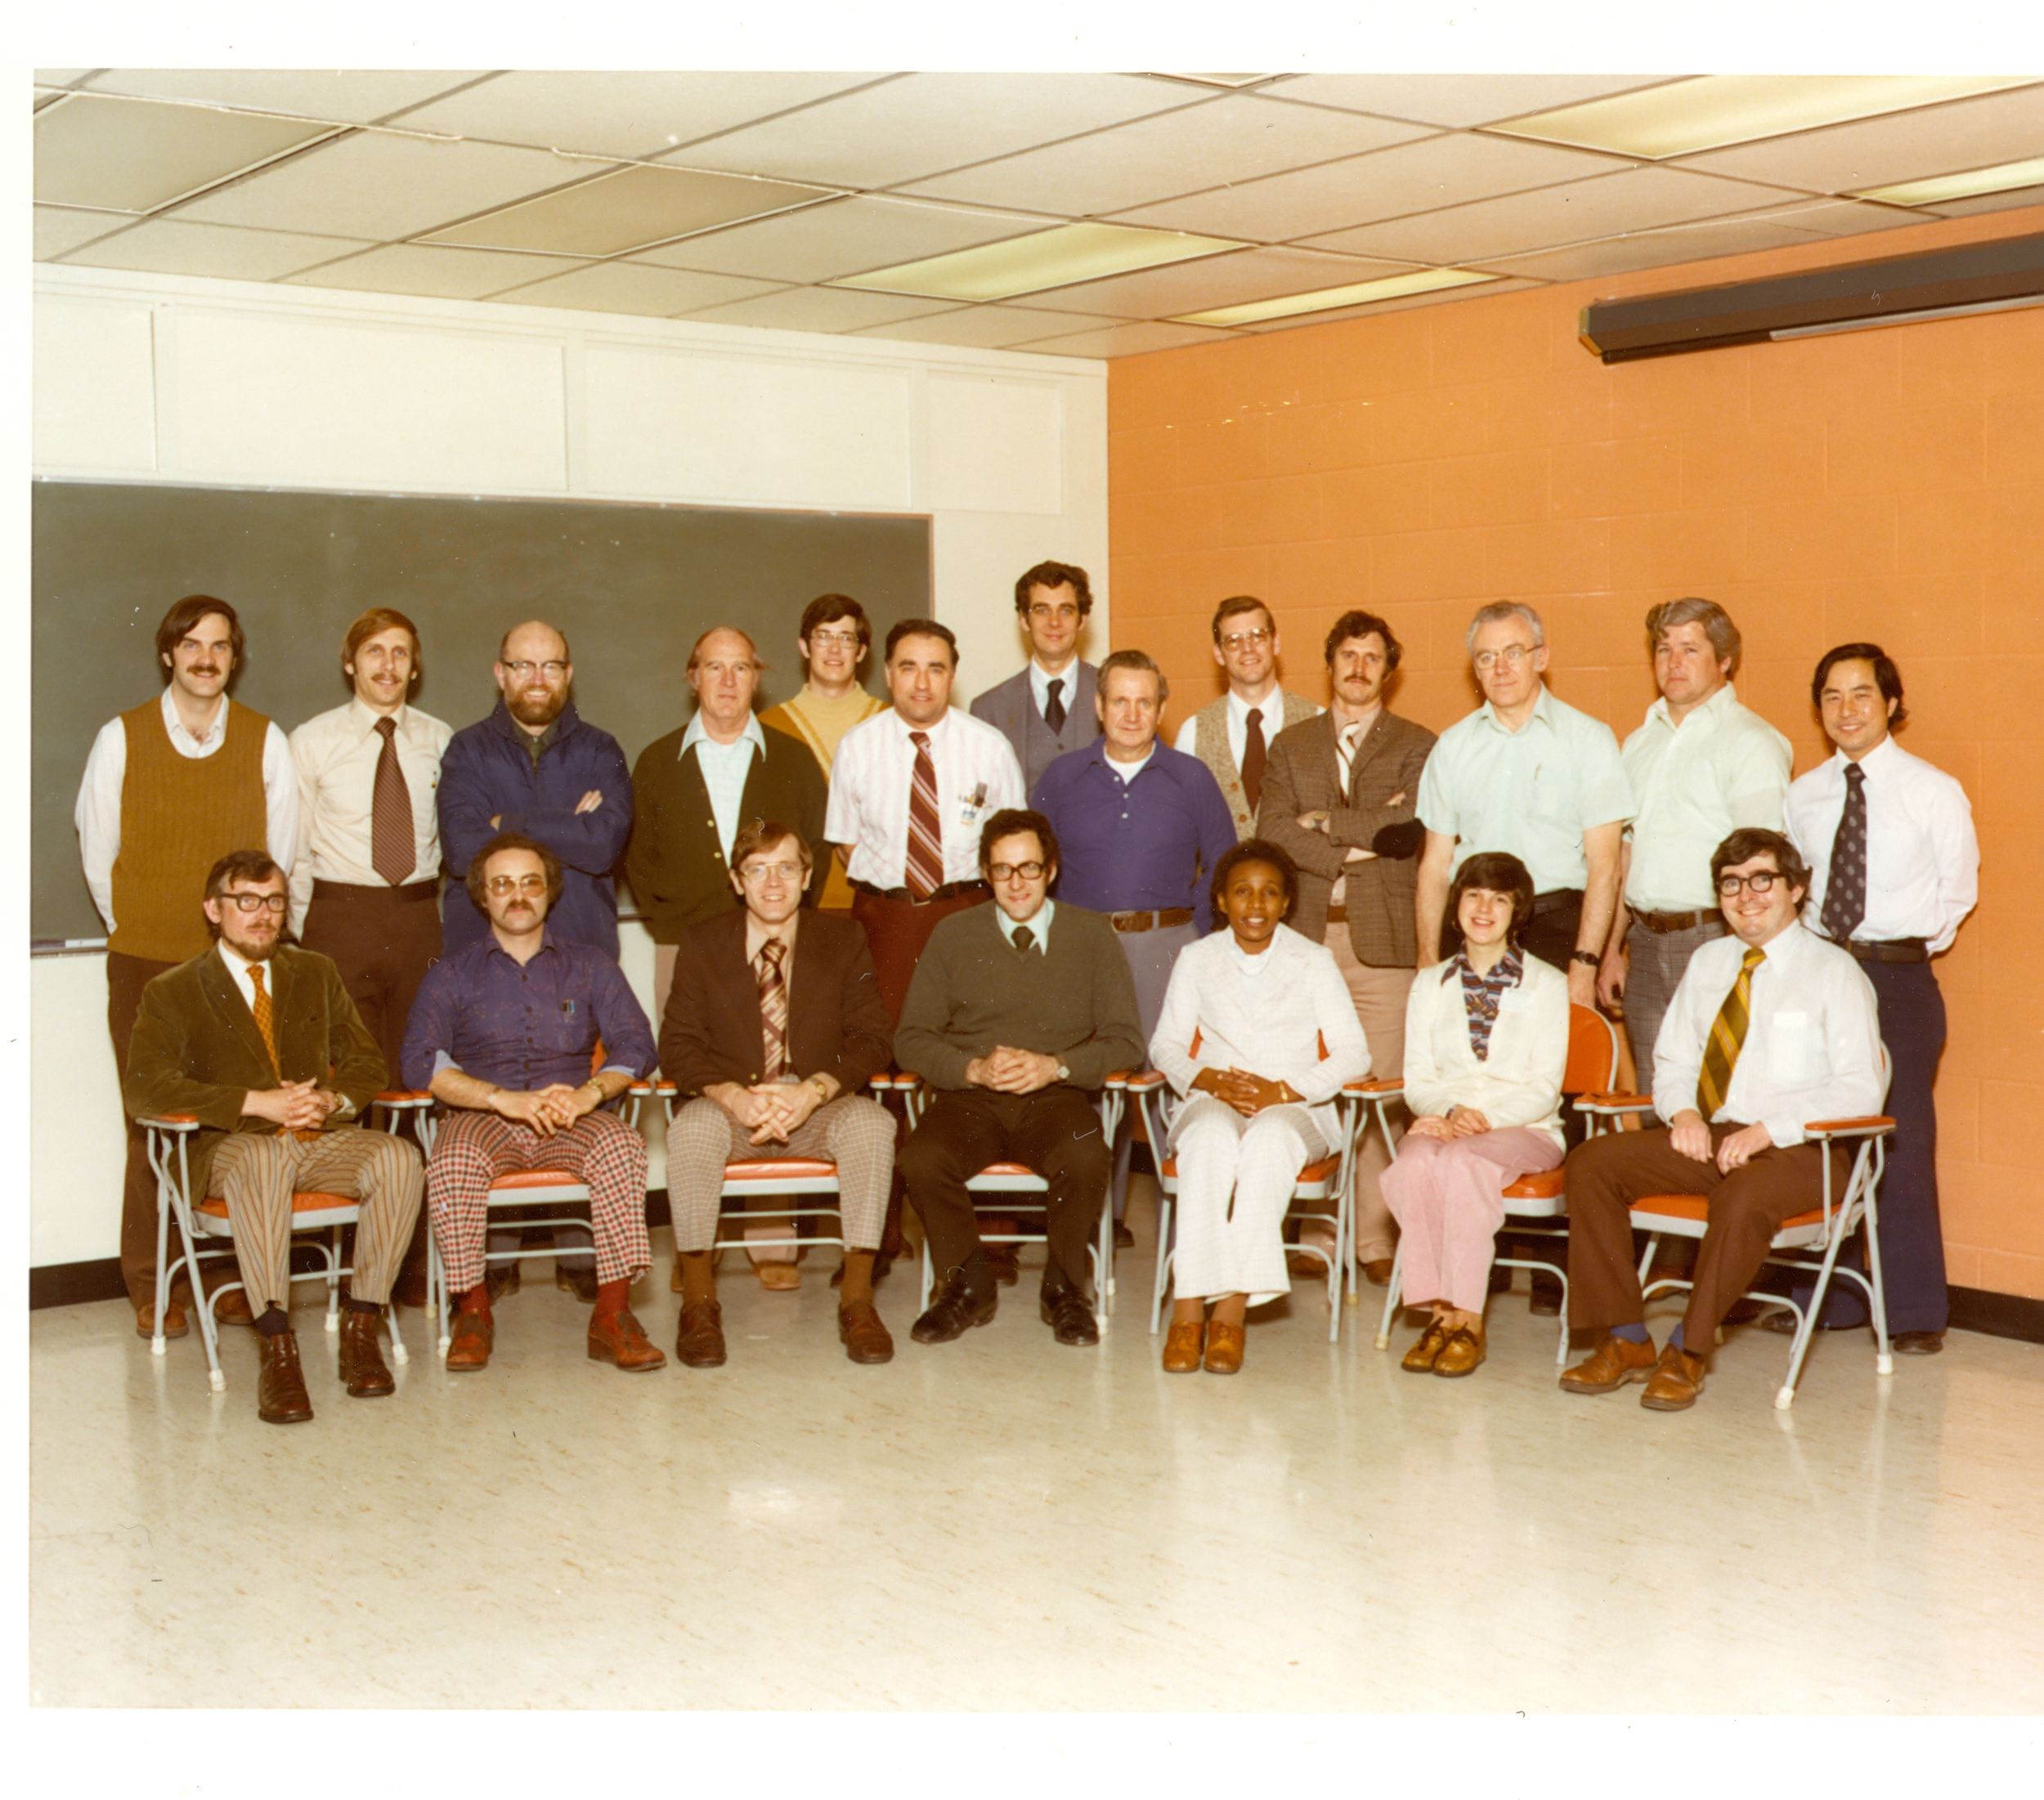 With colleagues from AT&T, 1977